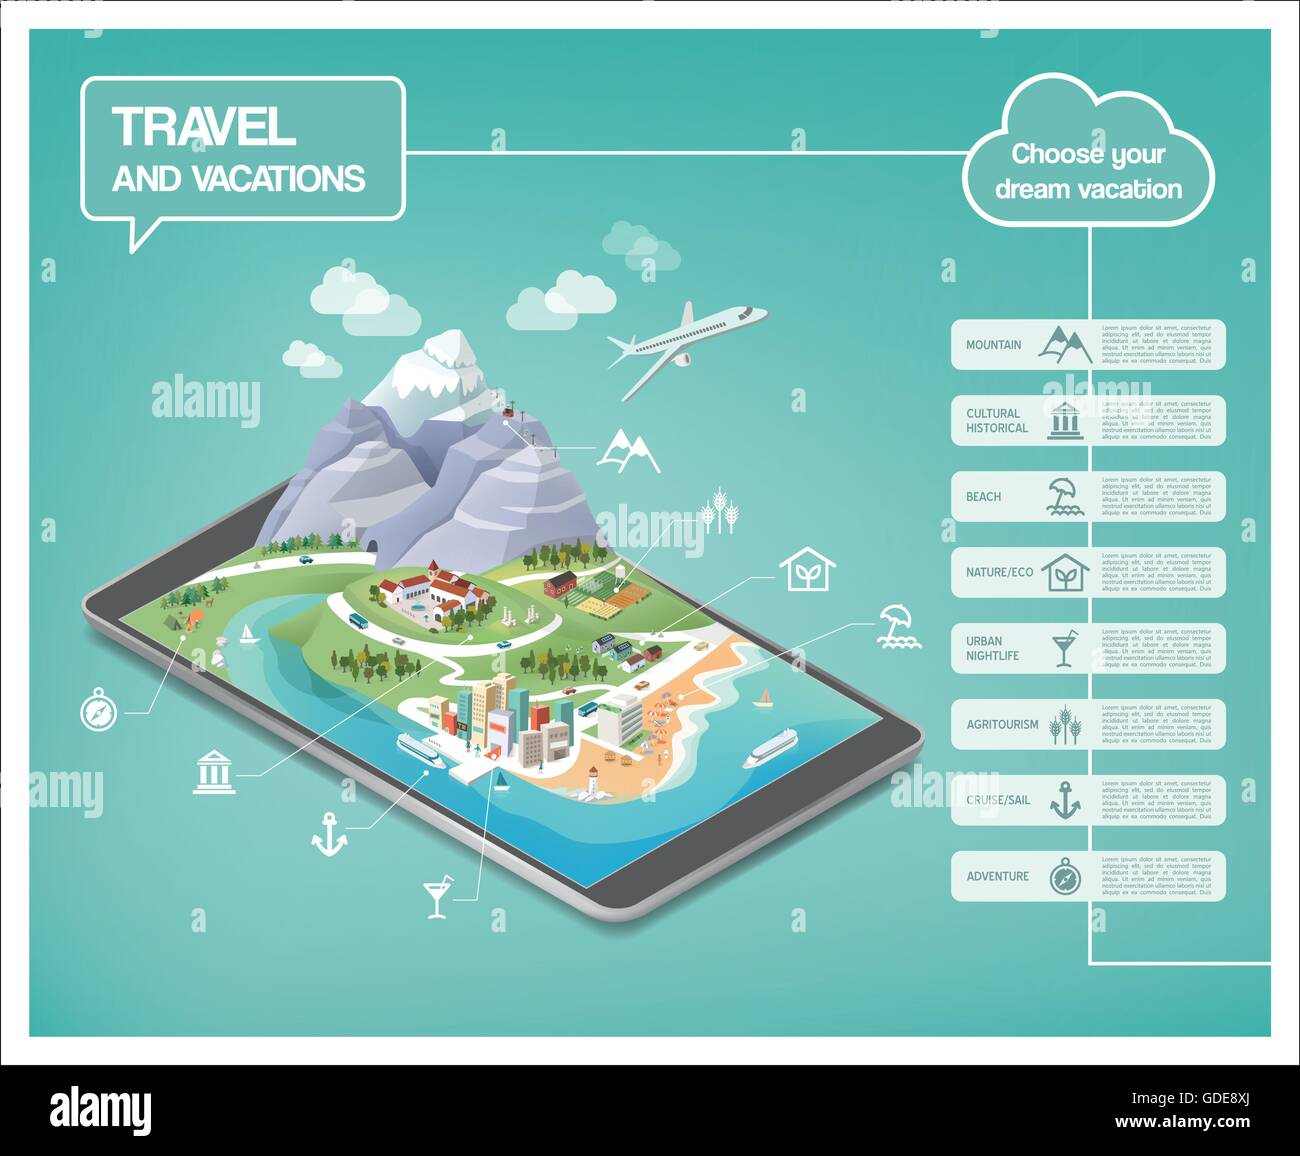 Dream vacations infographics, travel destinations typens on a tridimensional landscape including mountains, seaside, - Stock Vector